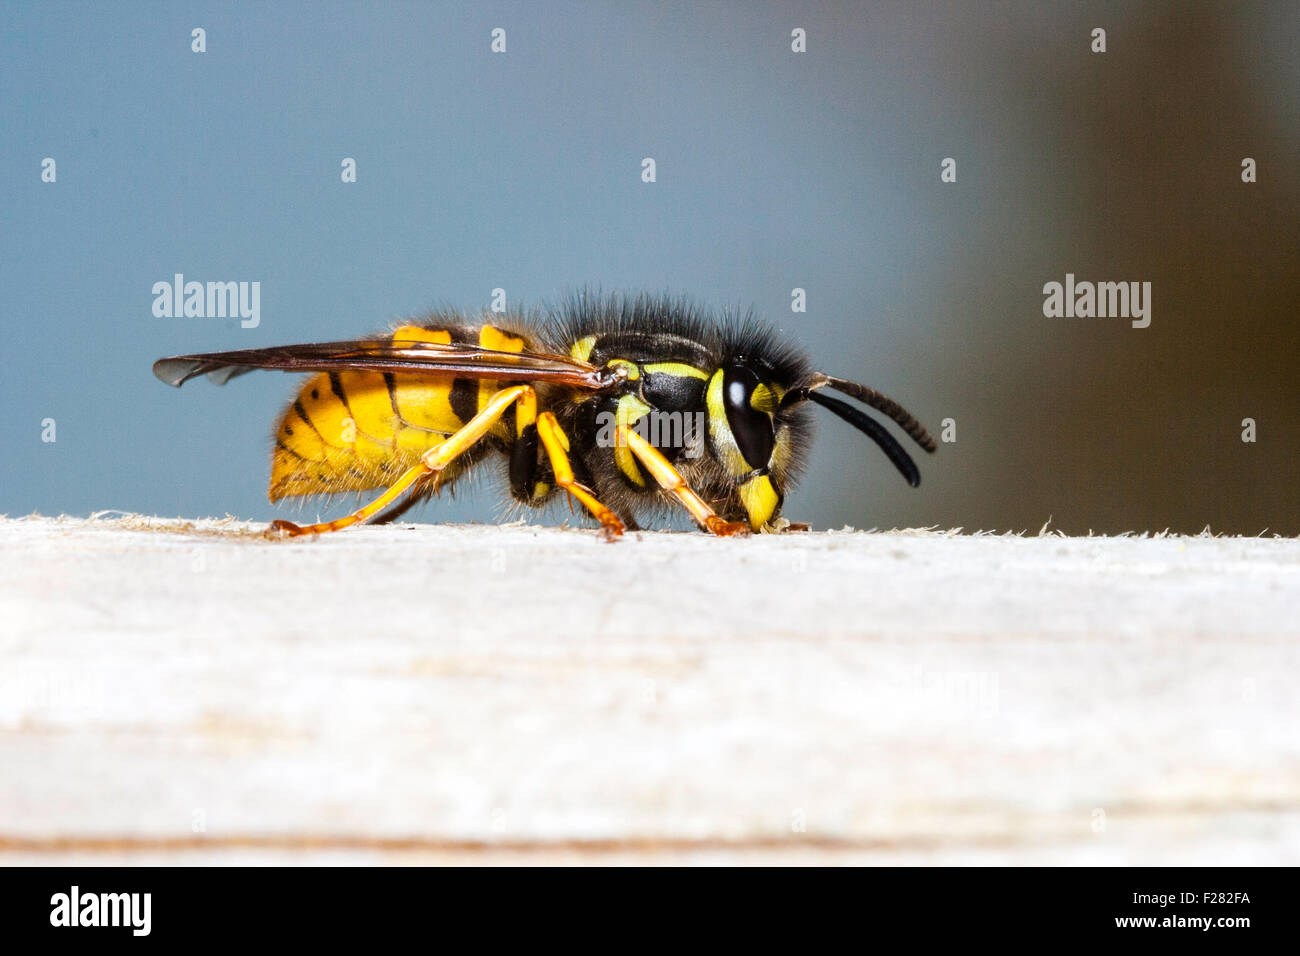 """Insect. Common wasp, """"vespula vulgaris"""", sitting on bit of word, direct side-view against blue background Stock Photo"""